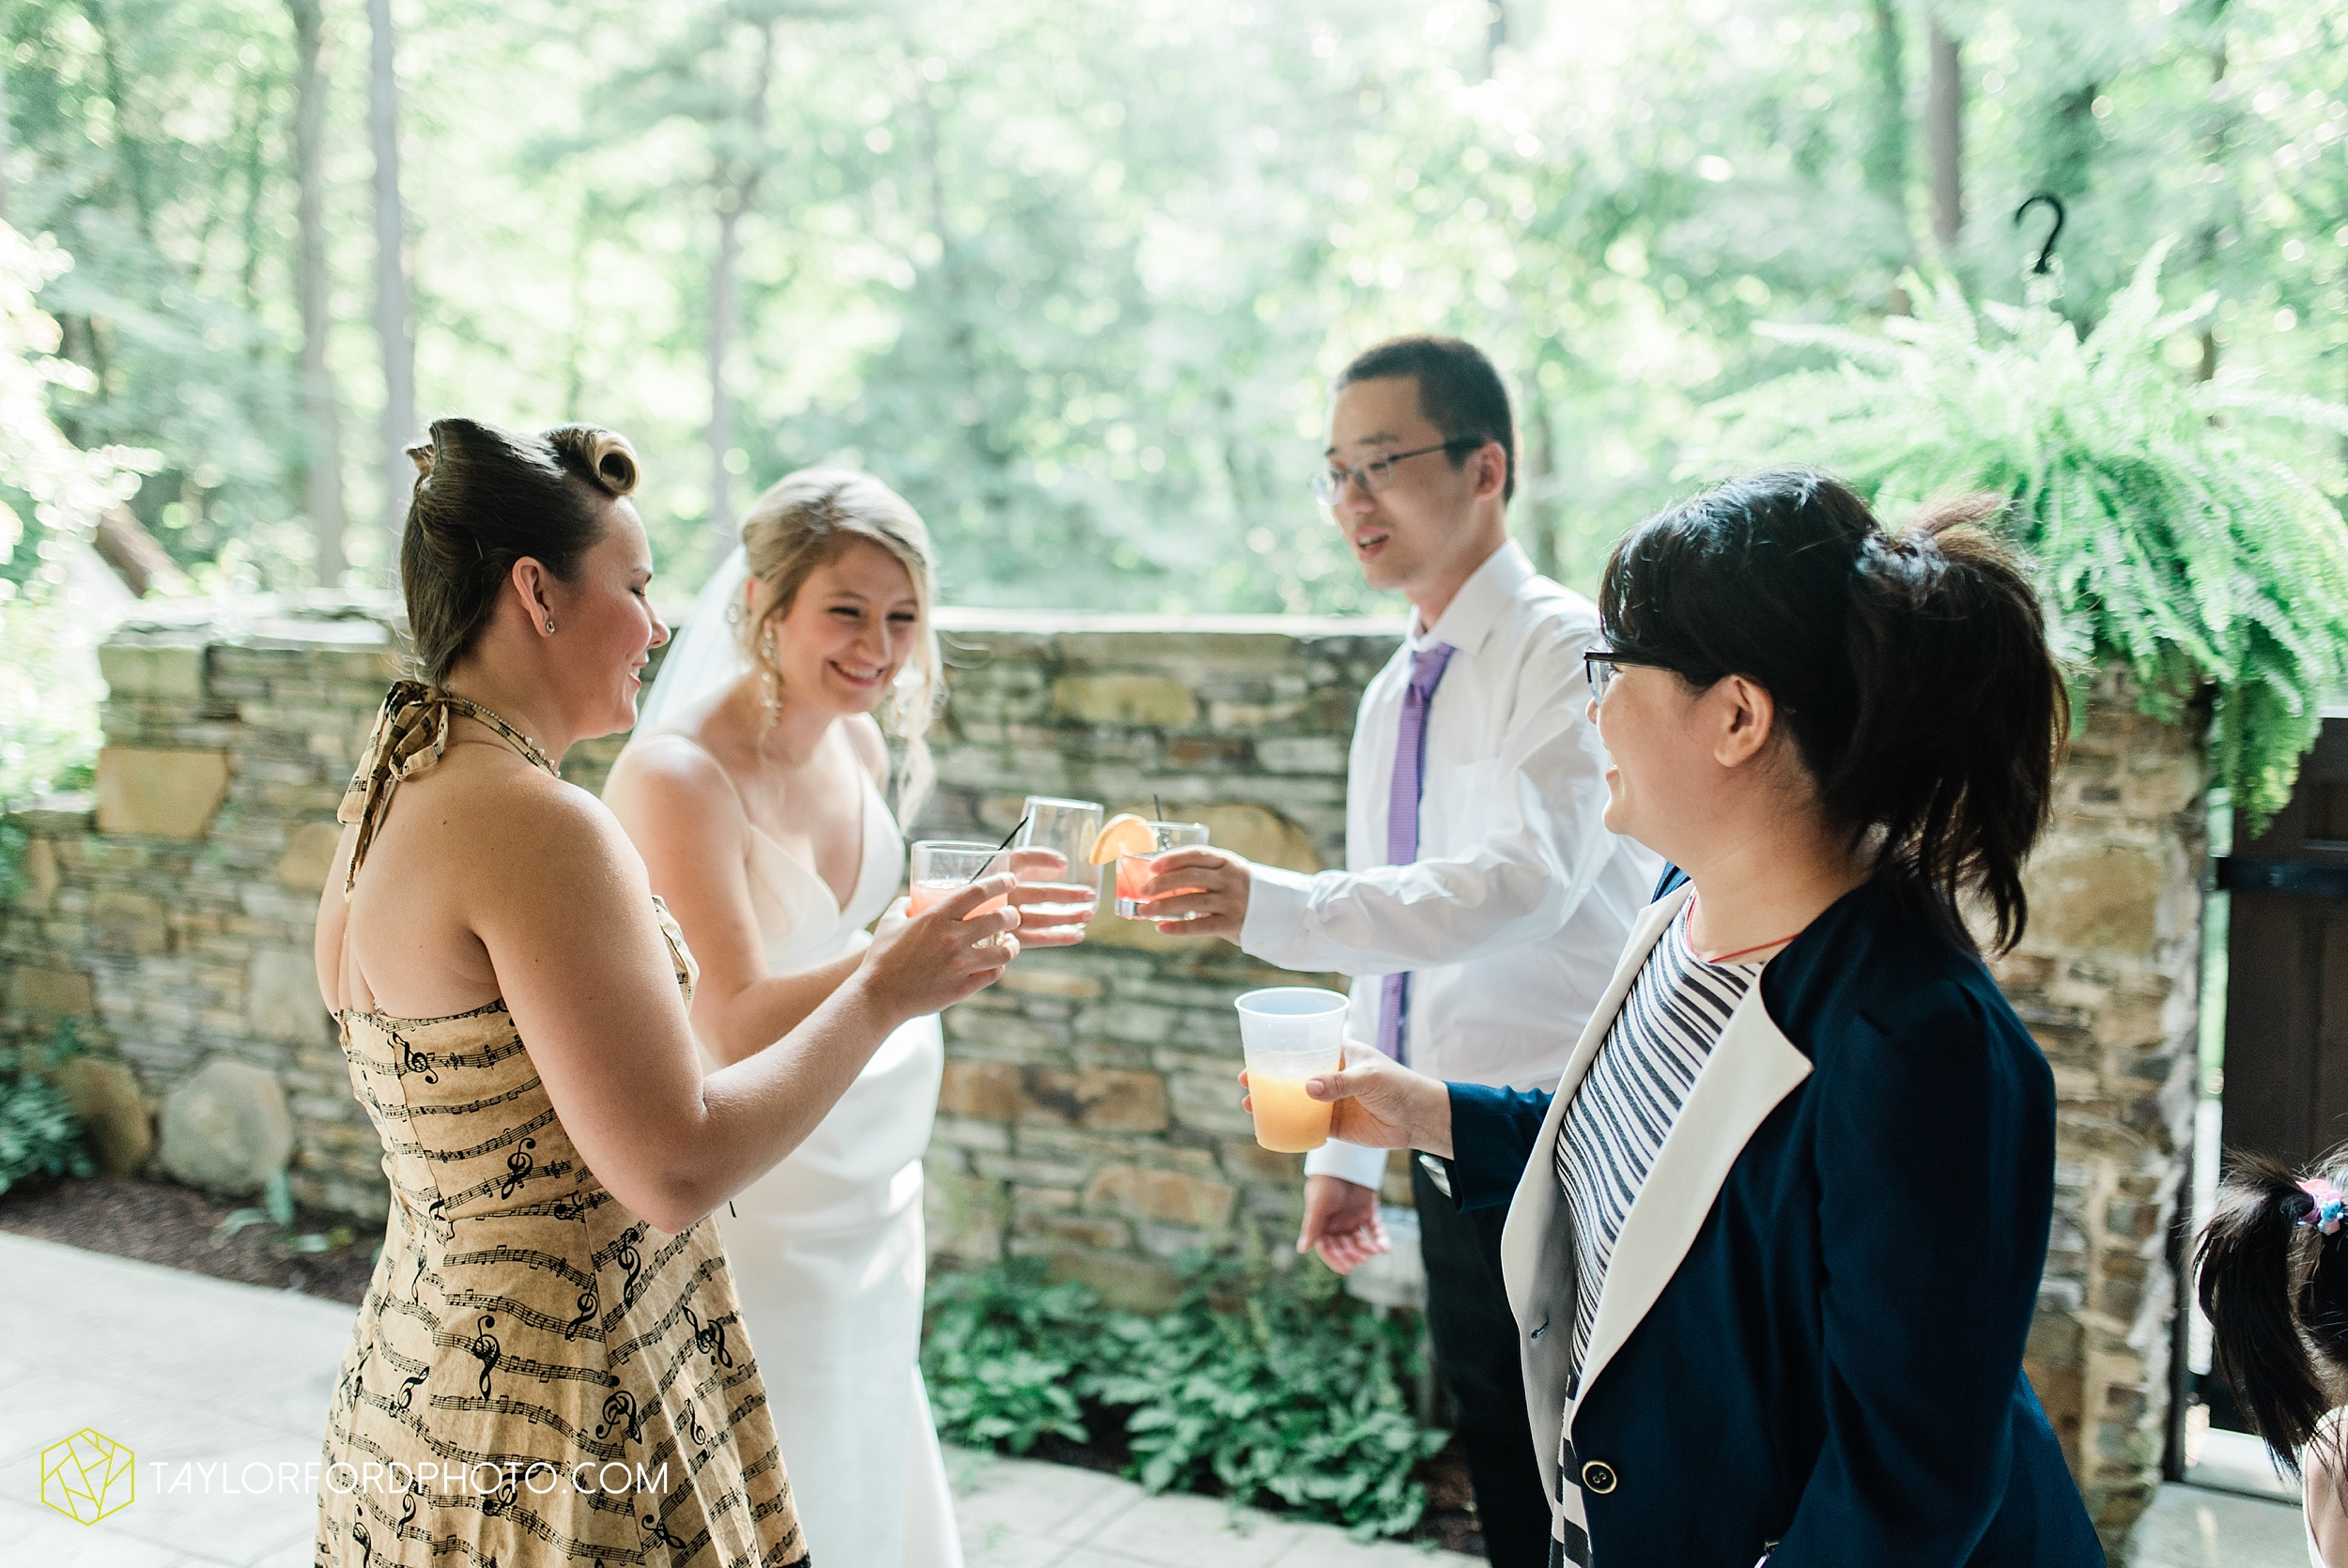 margot-may-evan-kohler-club-at-hillbrook-cleveland-chagrin-falls-outdoor-wedding-bhldn-gardenview-flowers-toledo-photographer-taylor-ford-photographer_9605.jpg